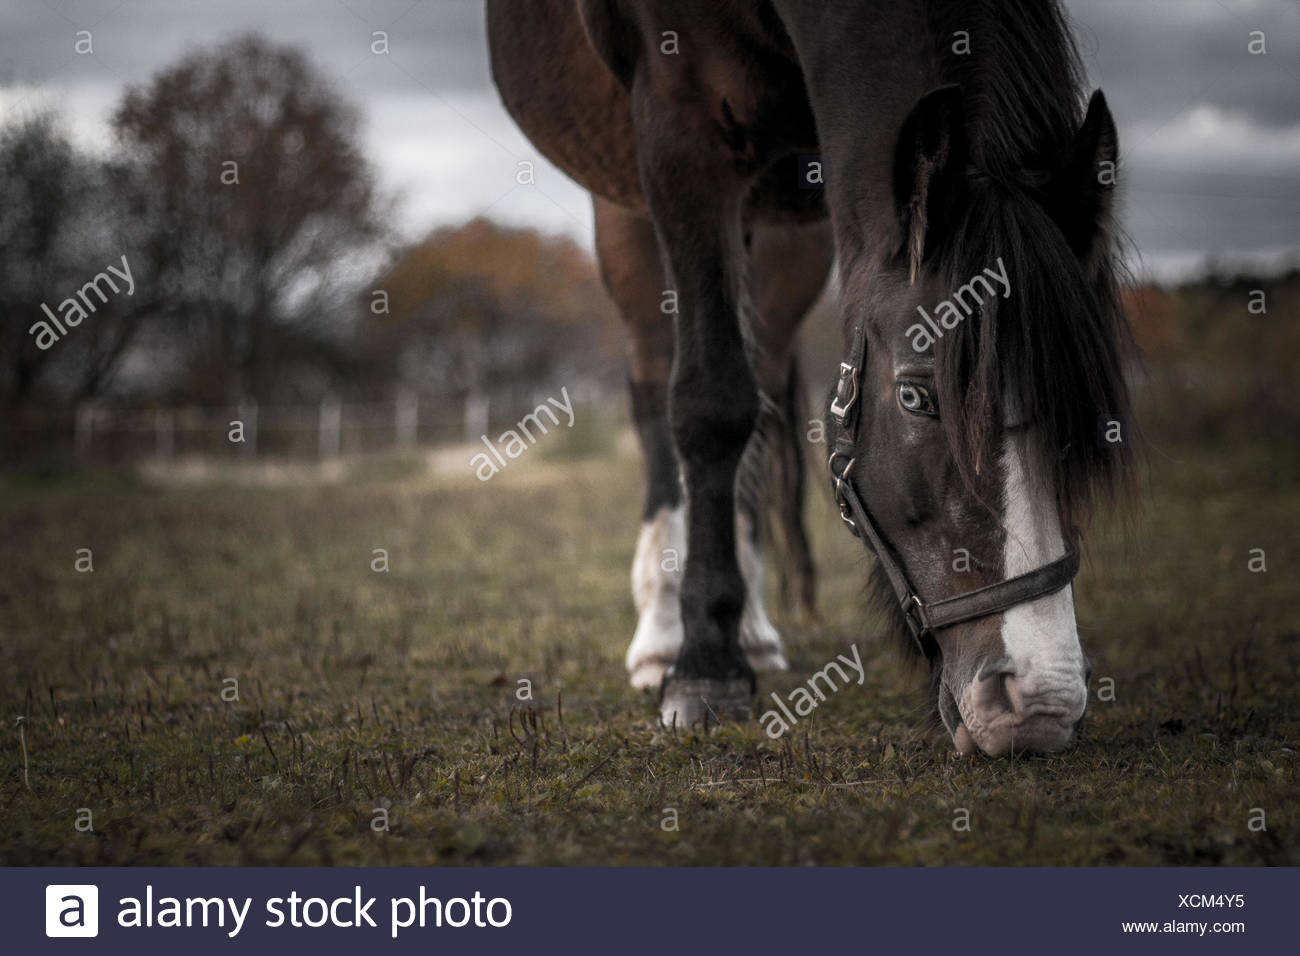 Norway, Horse grazing in pasture - Stock Image